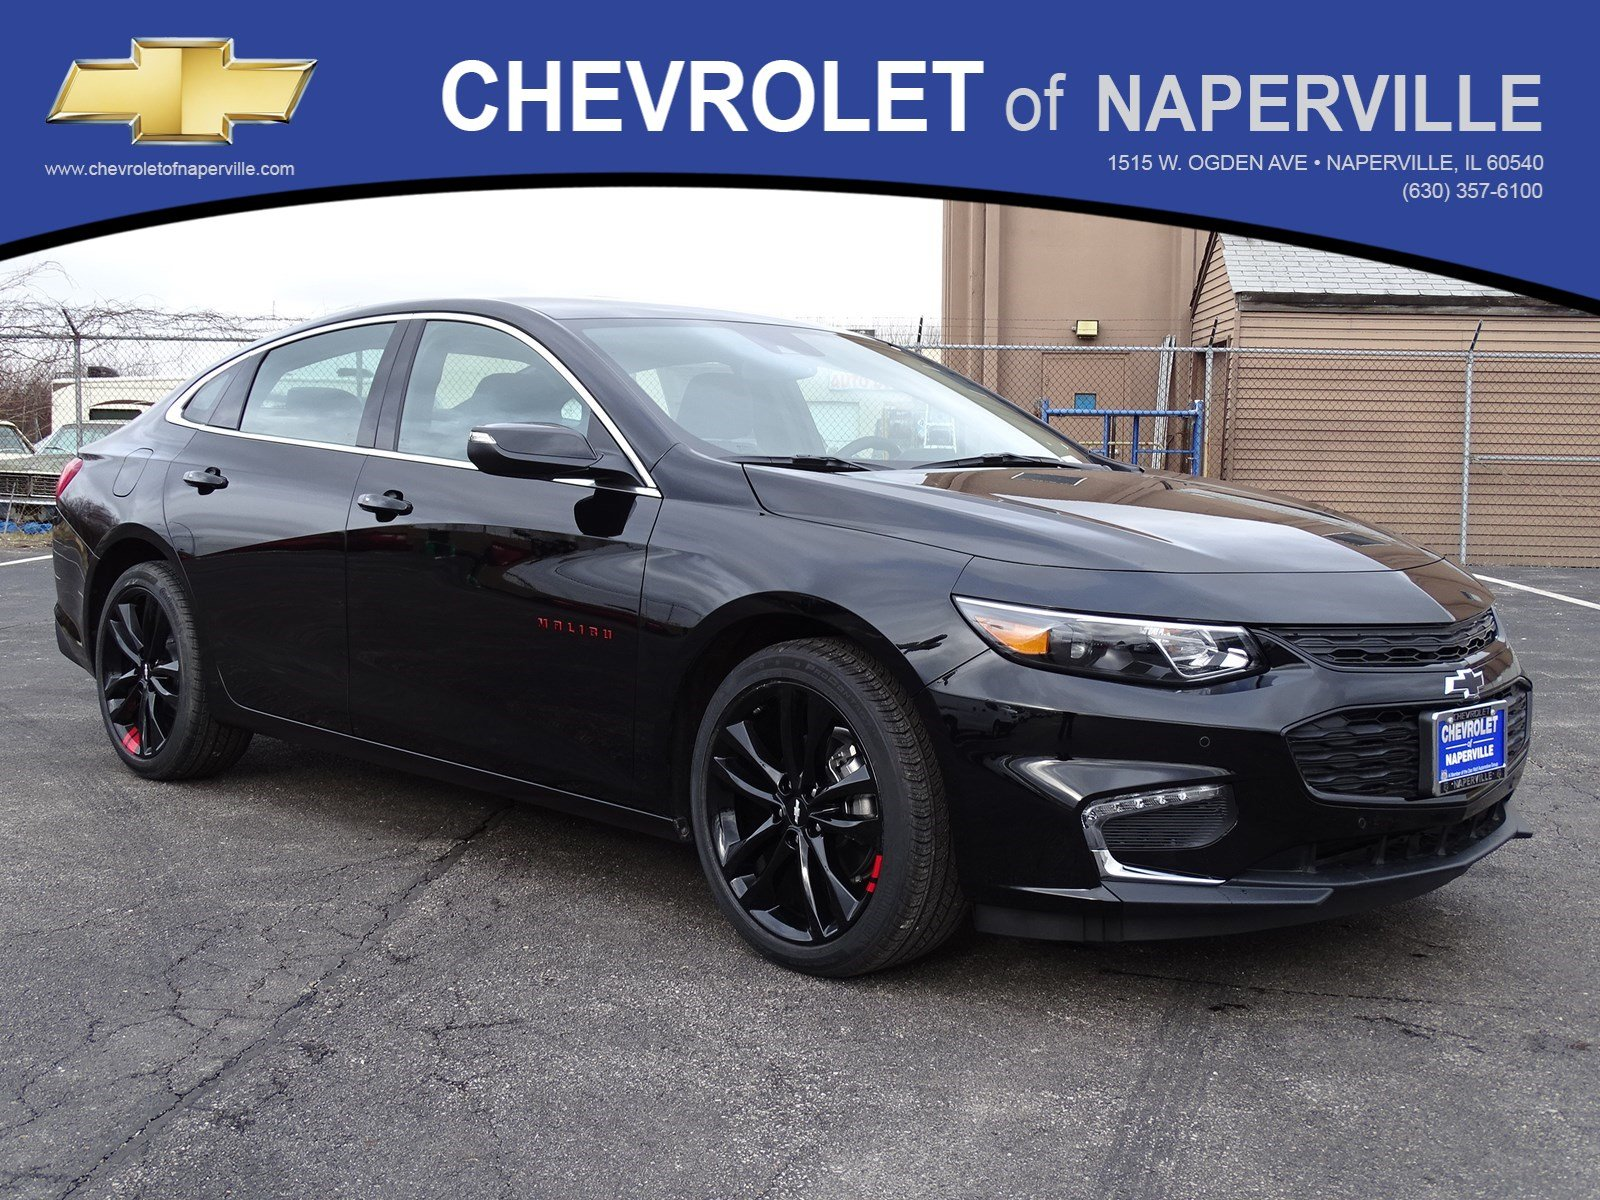 owned sport premier naperville pre tahoe inventory in used utility chevrolet of